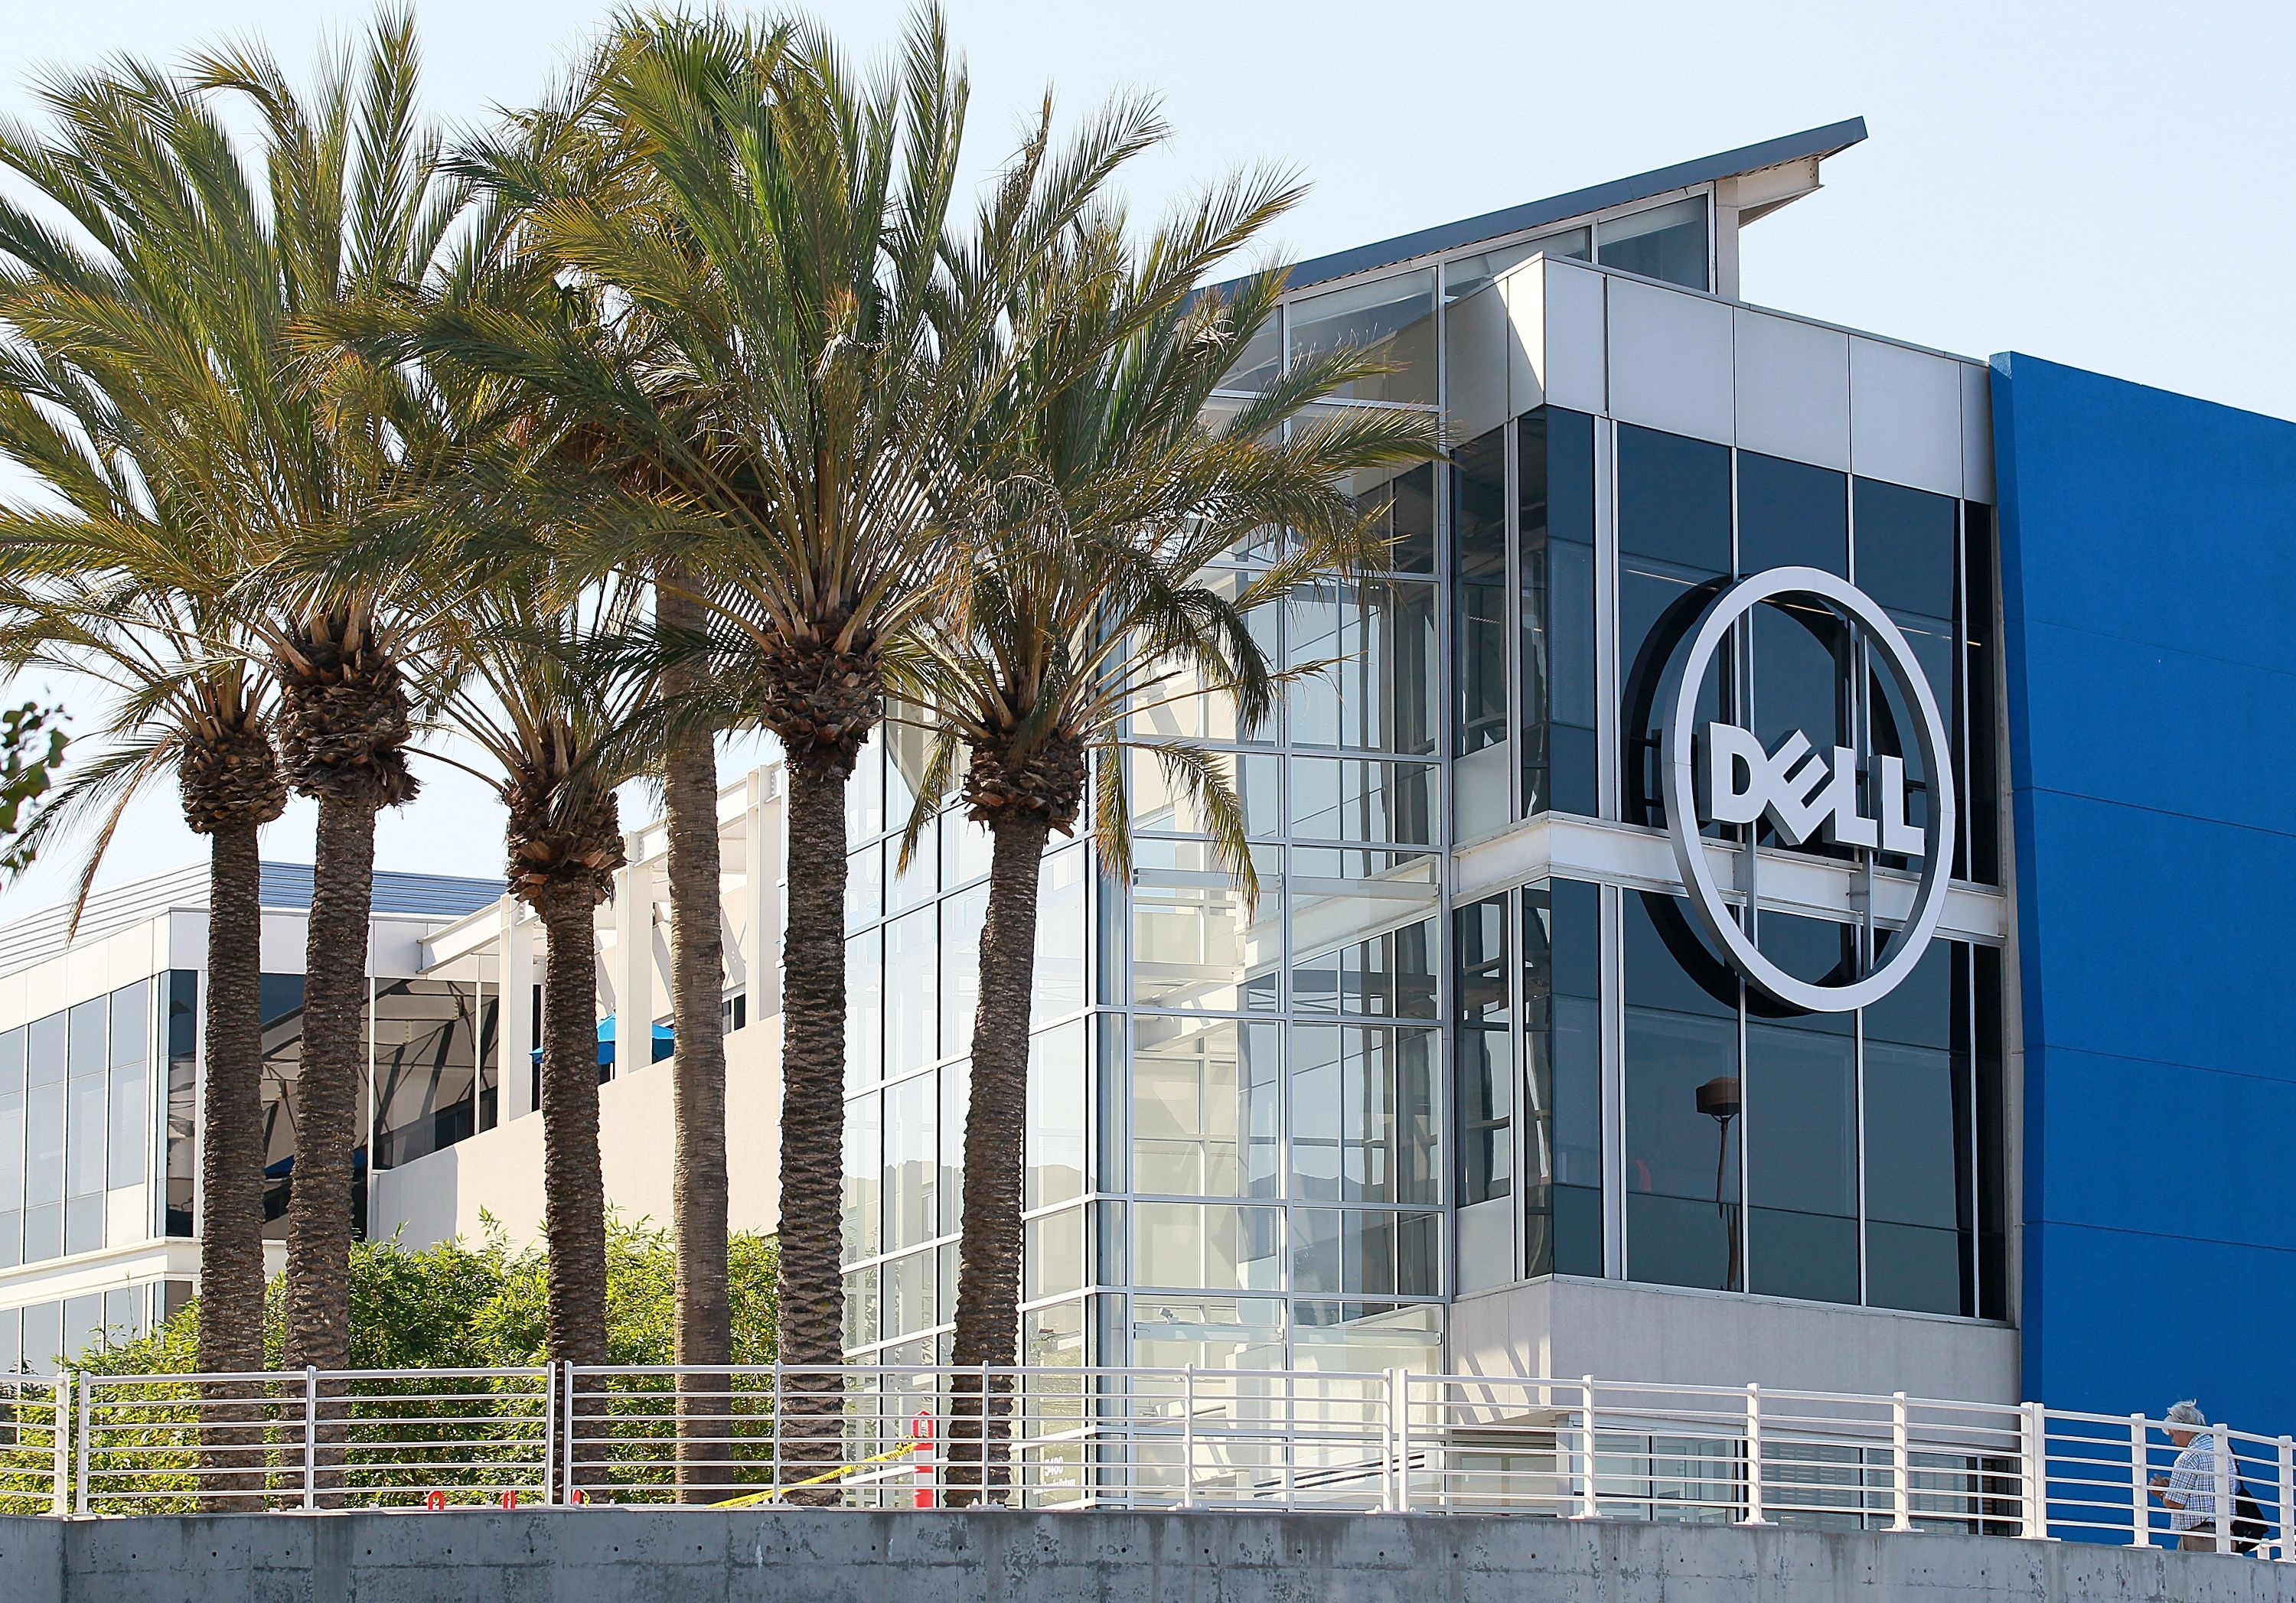 How Dell found it's way and transformed with the changing times